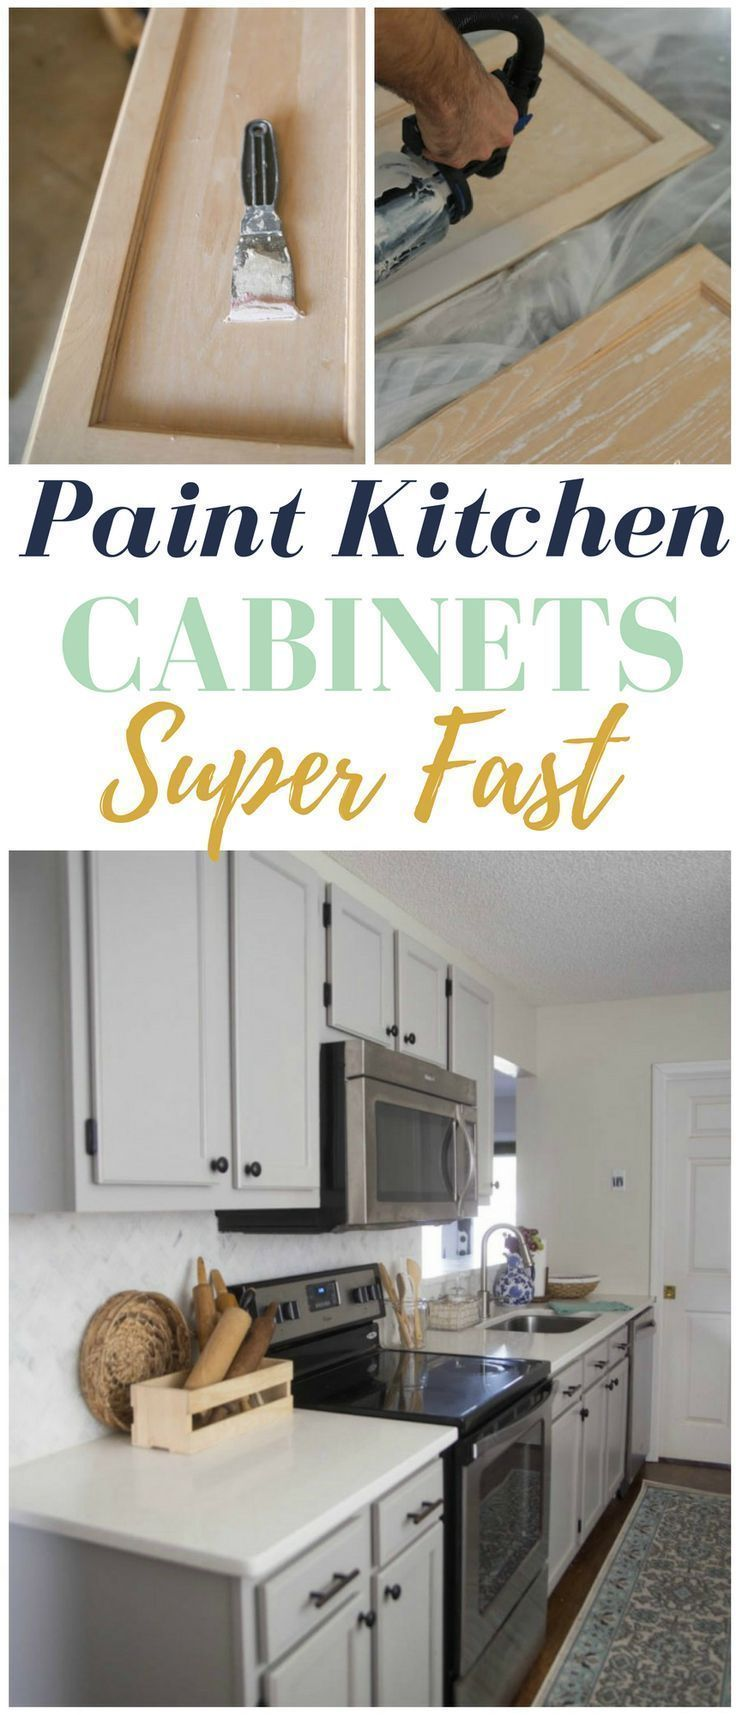 How To Paint Oak Cabinets The Easy Waytime Saving Tips And Mesmerizing Spray Painting Kitchen Cabinets Design Ideas